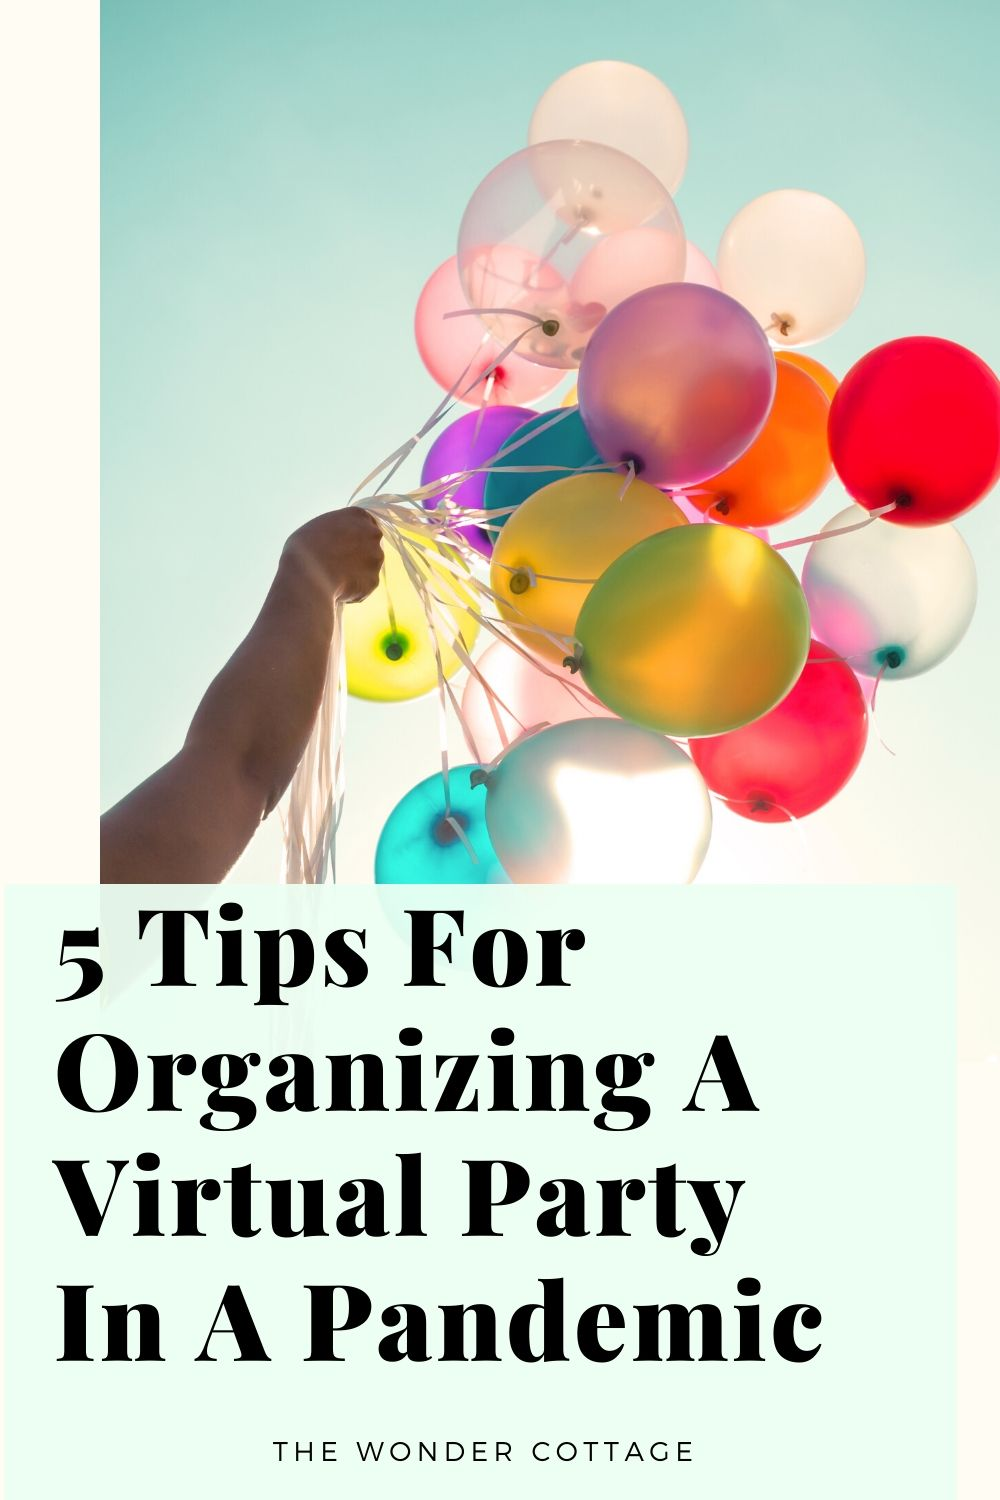 5 tips for organizing a virtual party in a pandemic